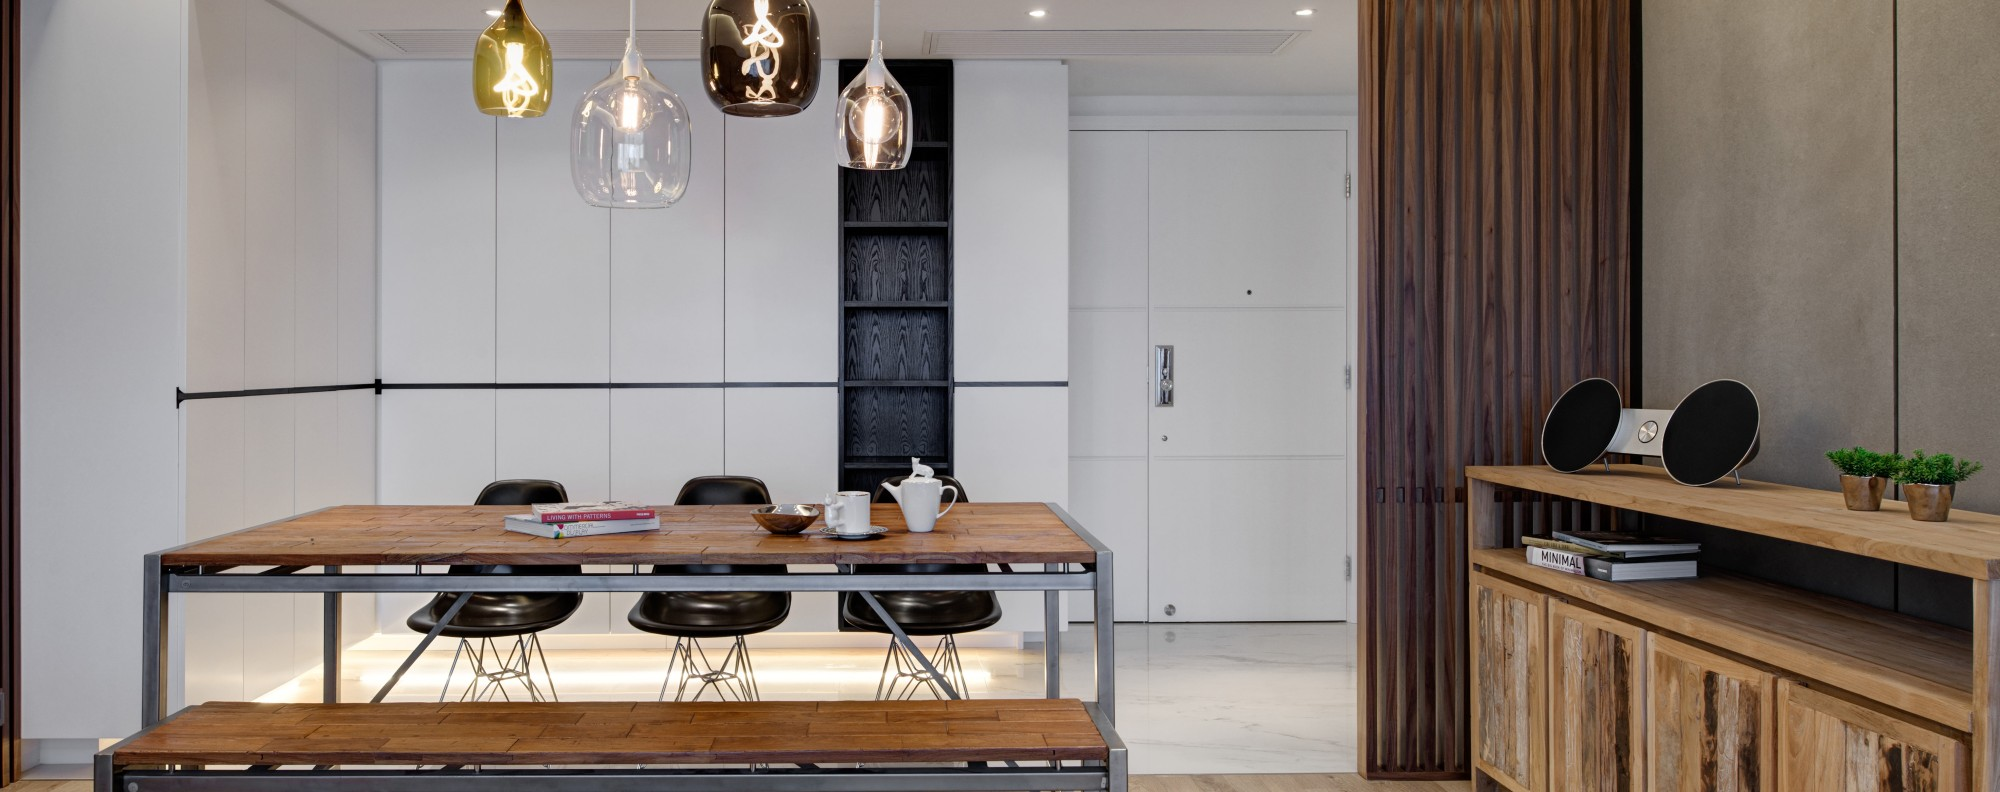 Hong Kong Flat Gets Industrial Theme With Wood Concrete And Pops Of Colour